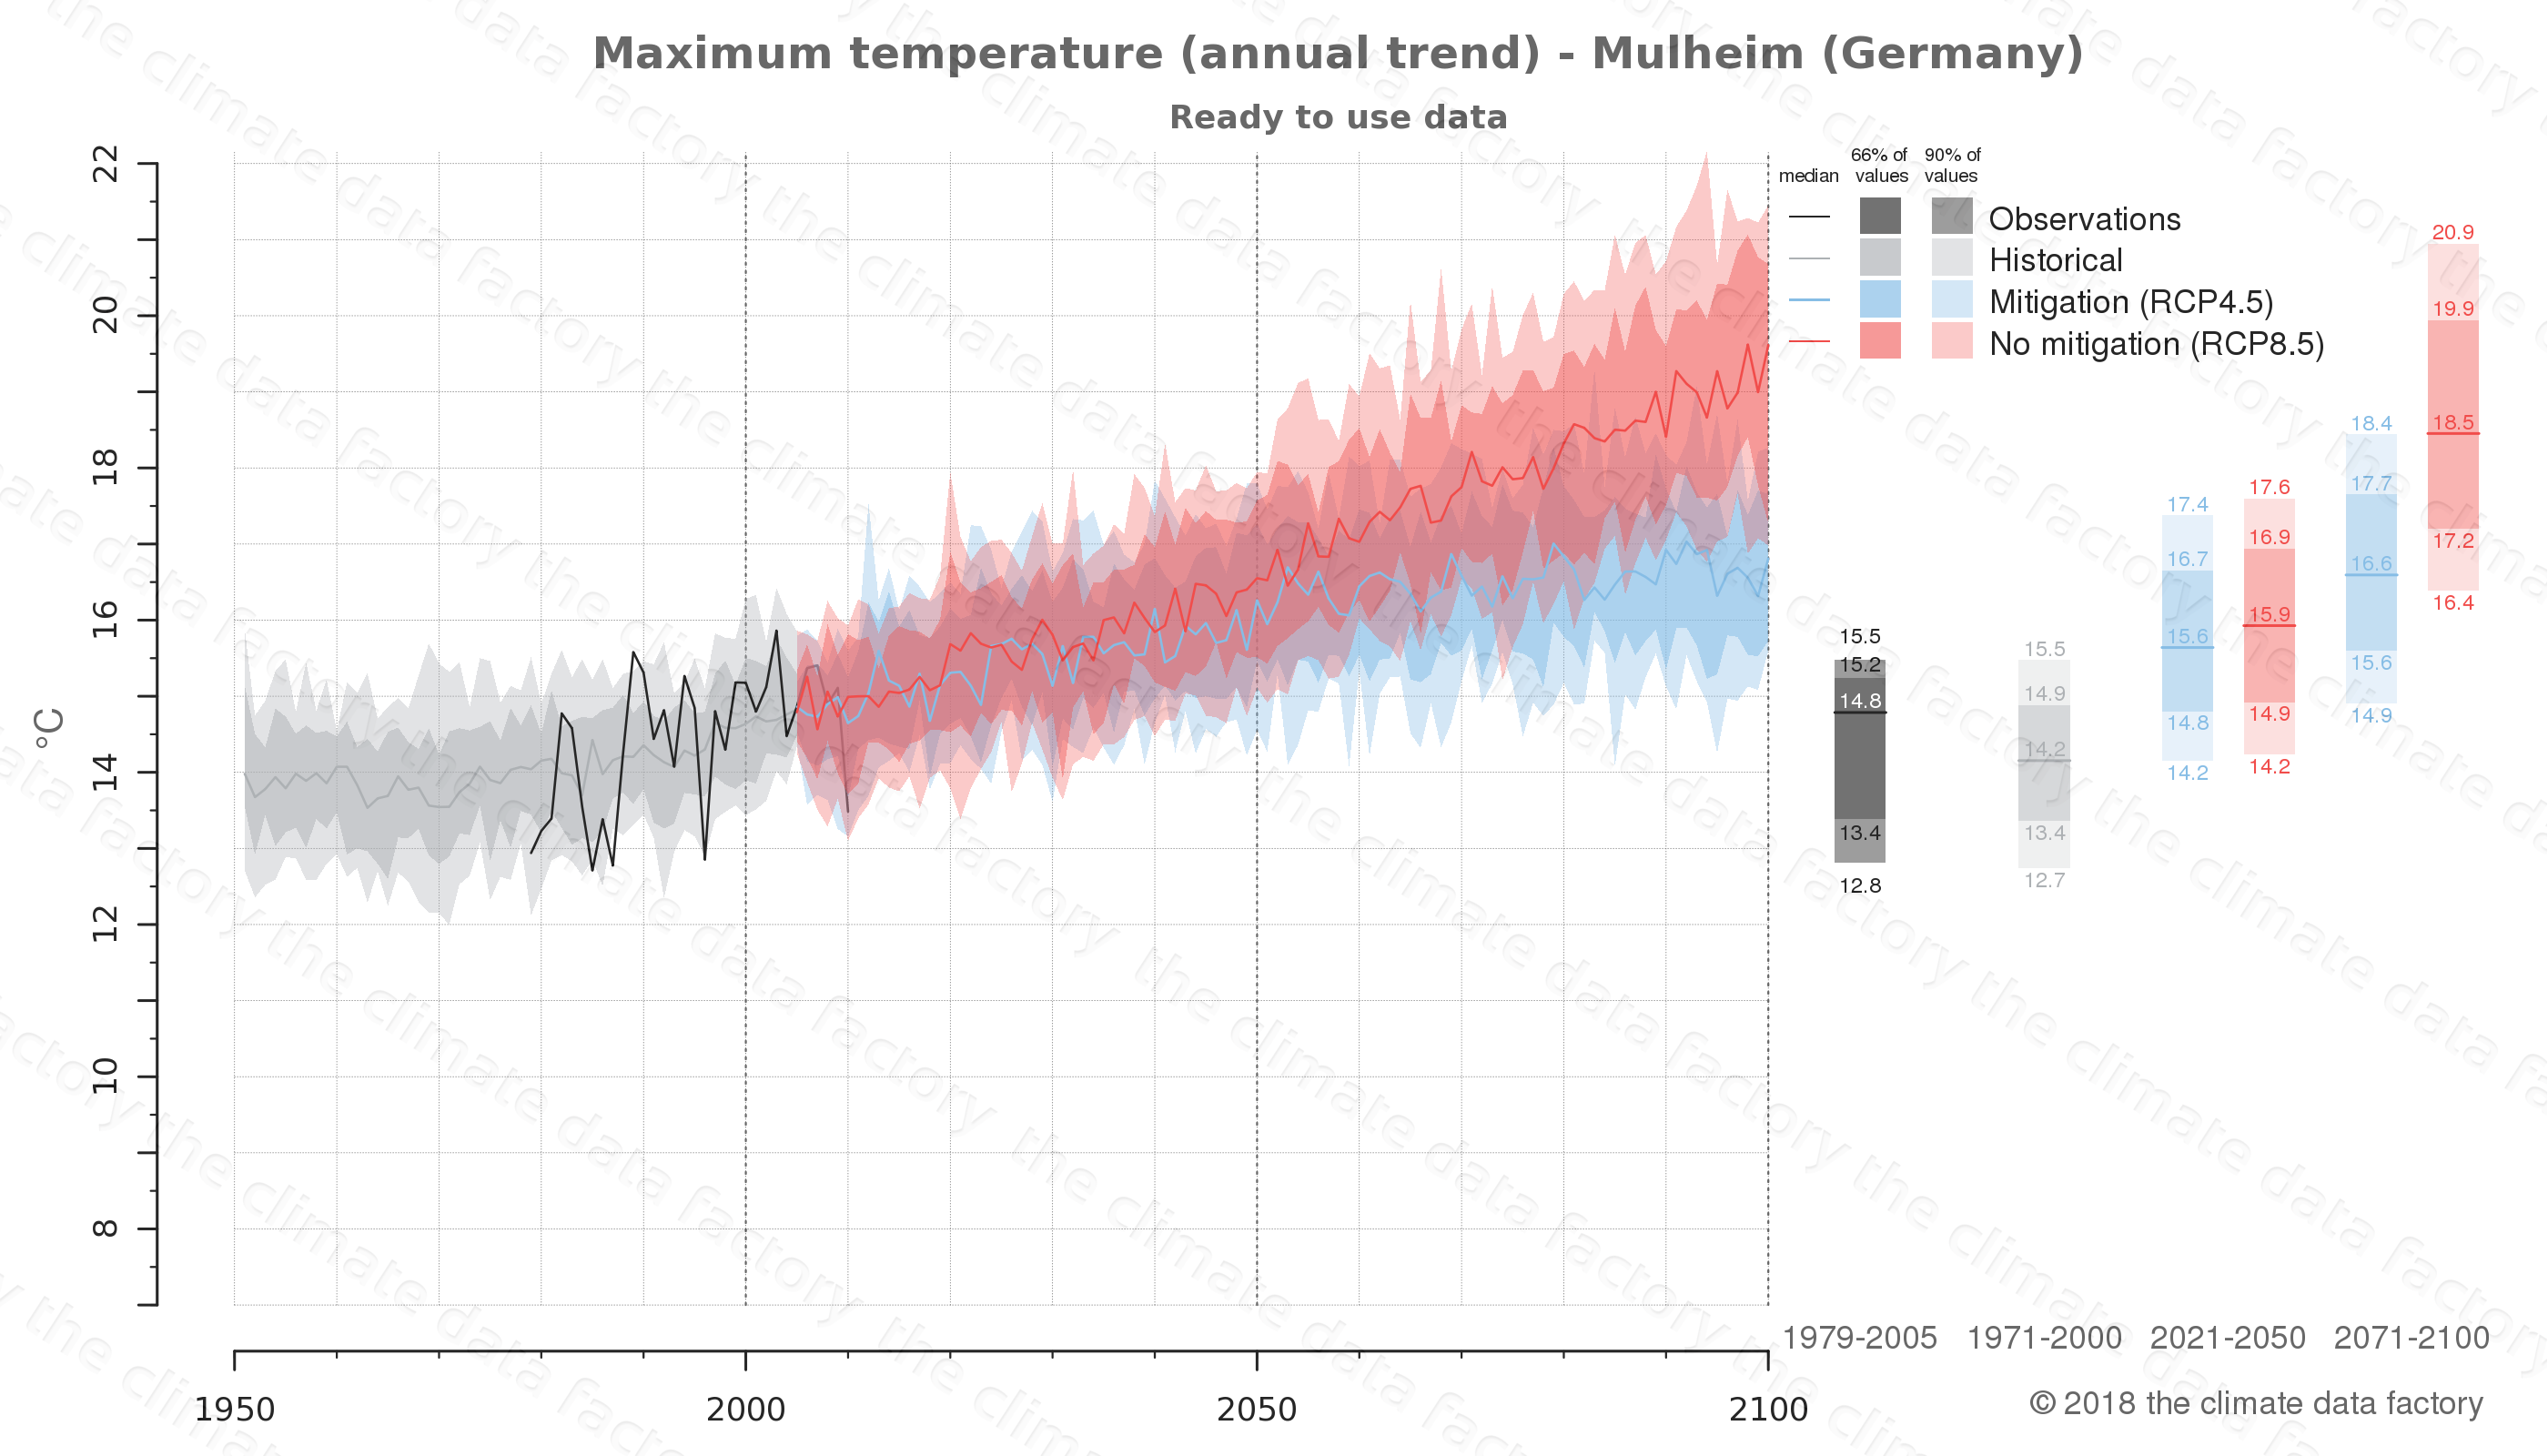 climate change data policy adaptation climate graph city data maximum-temperature mulheim germany